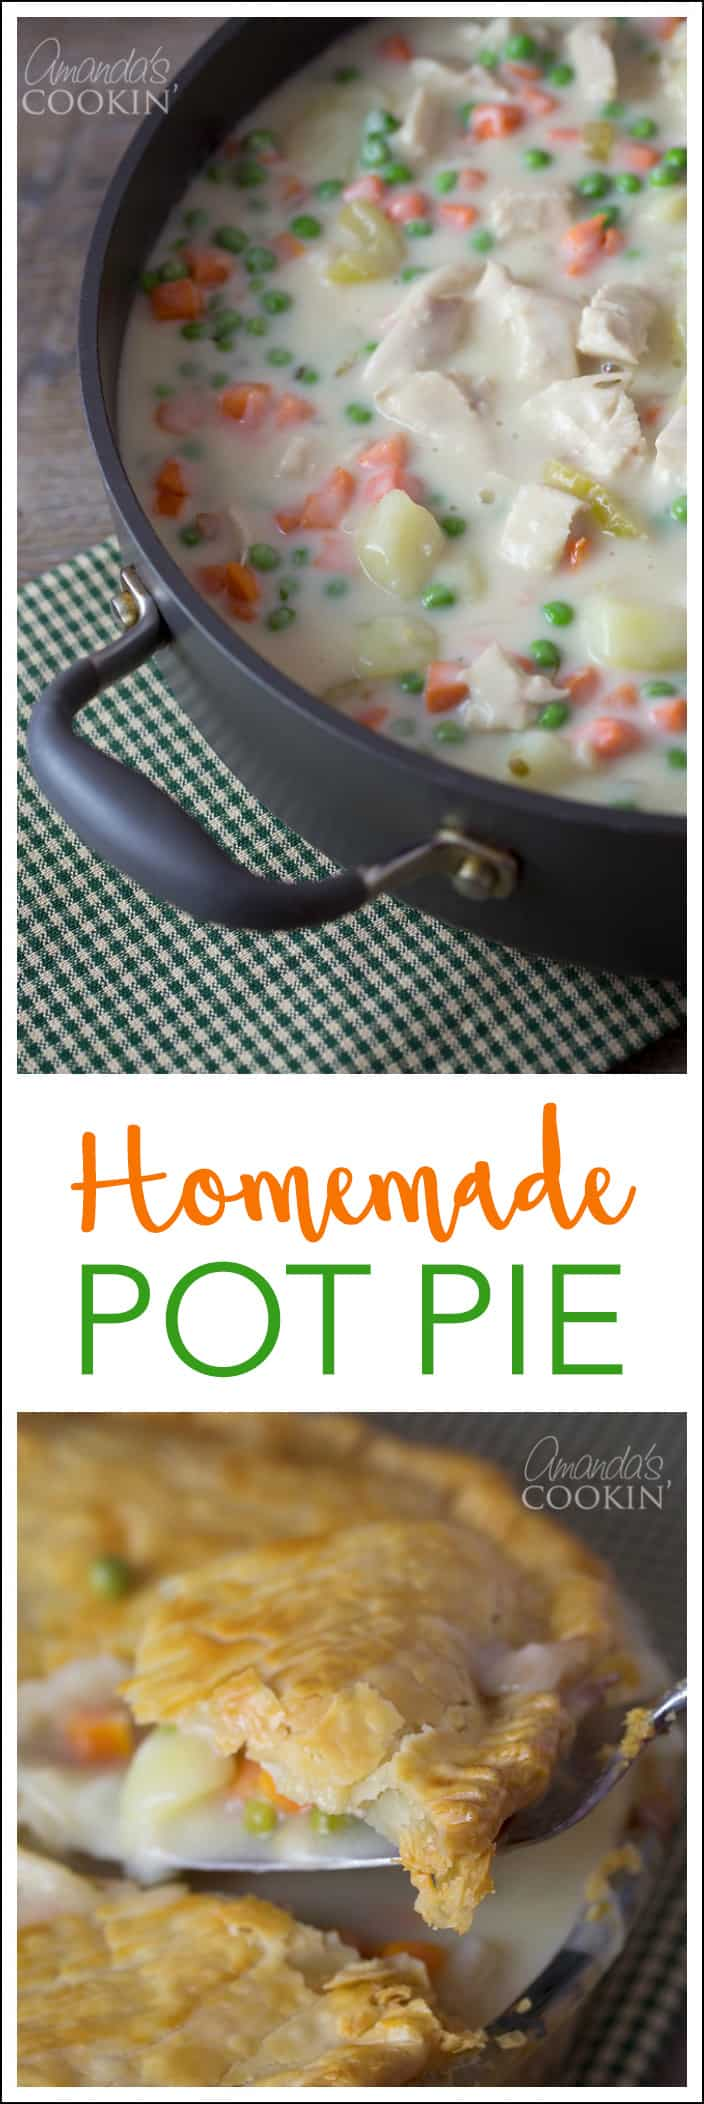 Delicious Homemade Pot Pie: Chicken or Turkey, perfect for leftovers